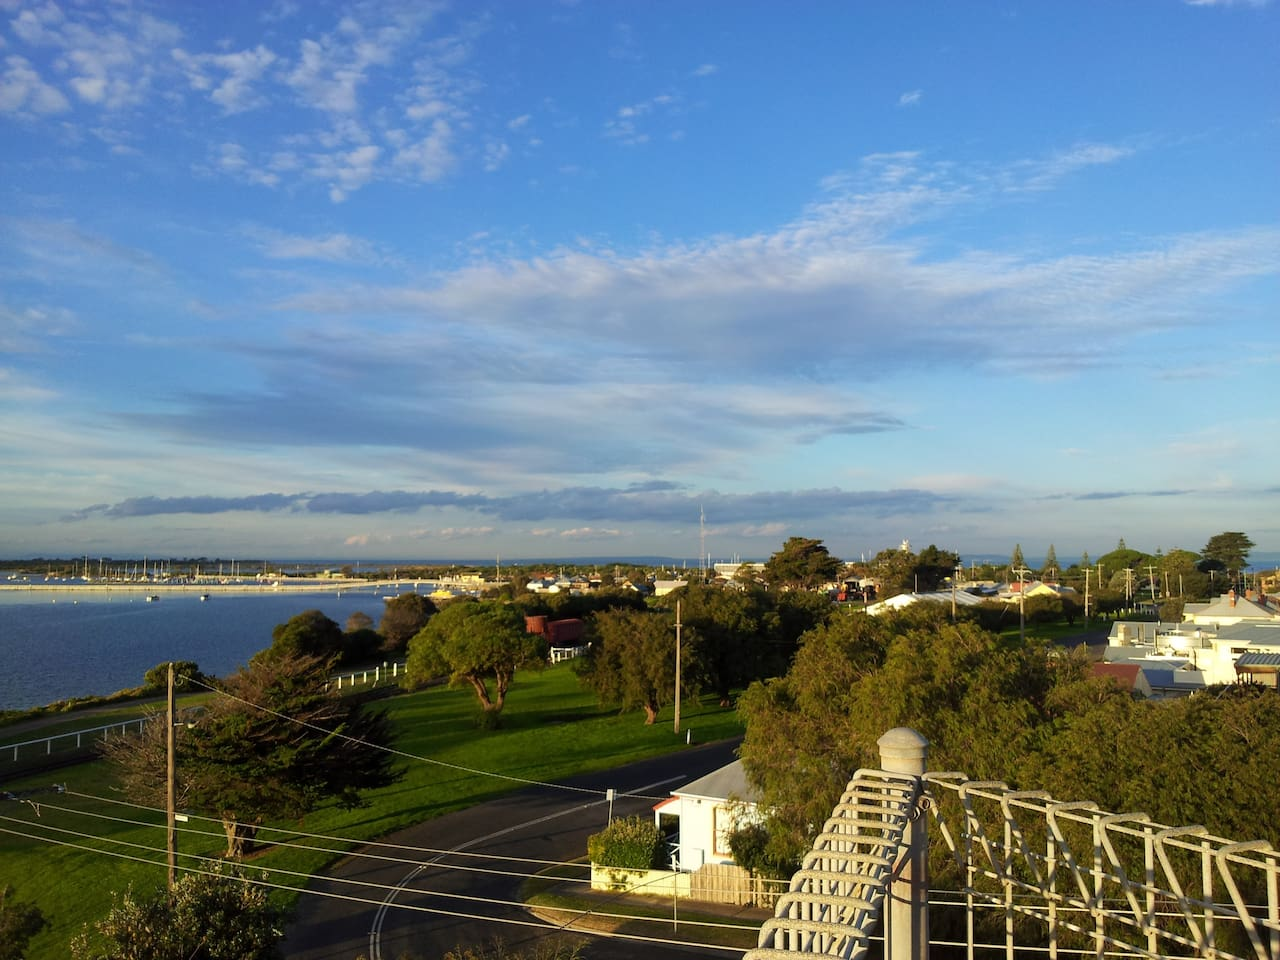 The view to the East from the point of the top deck